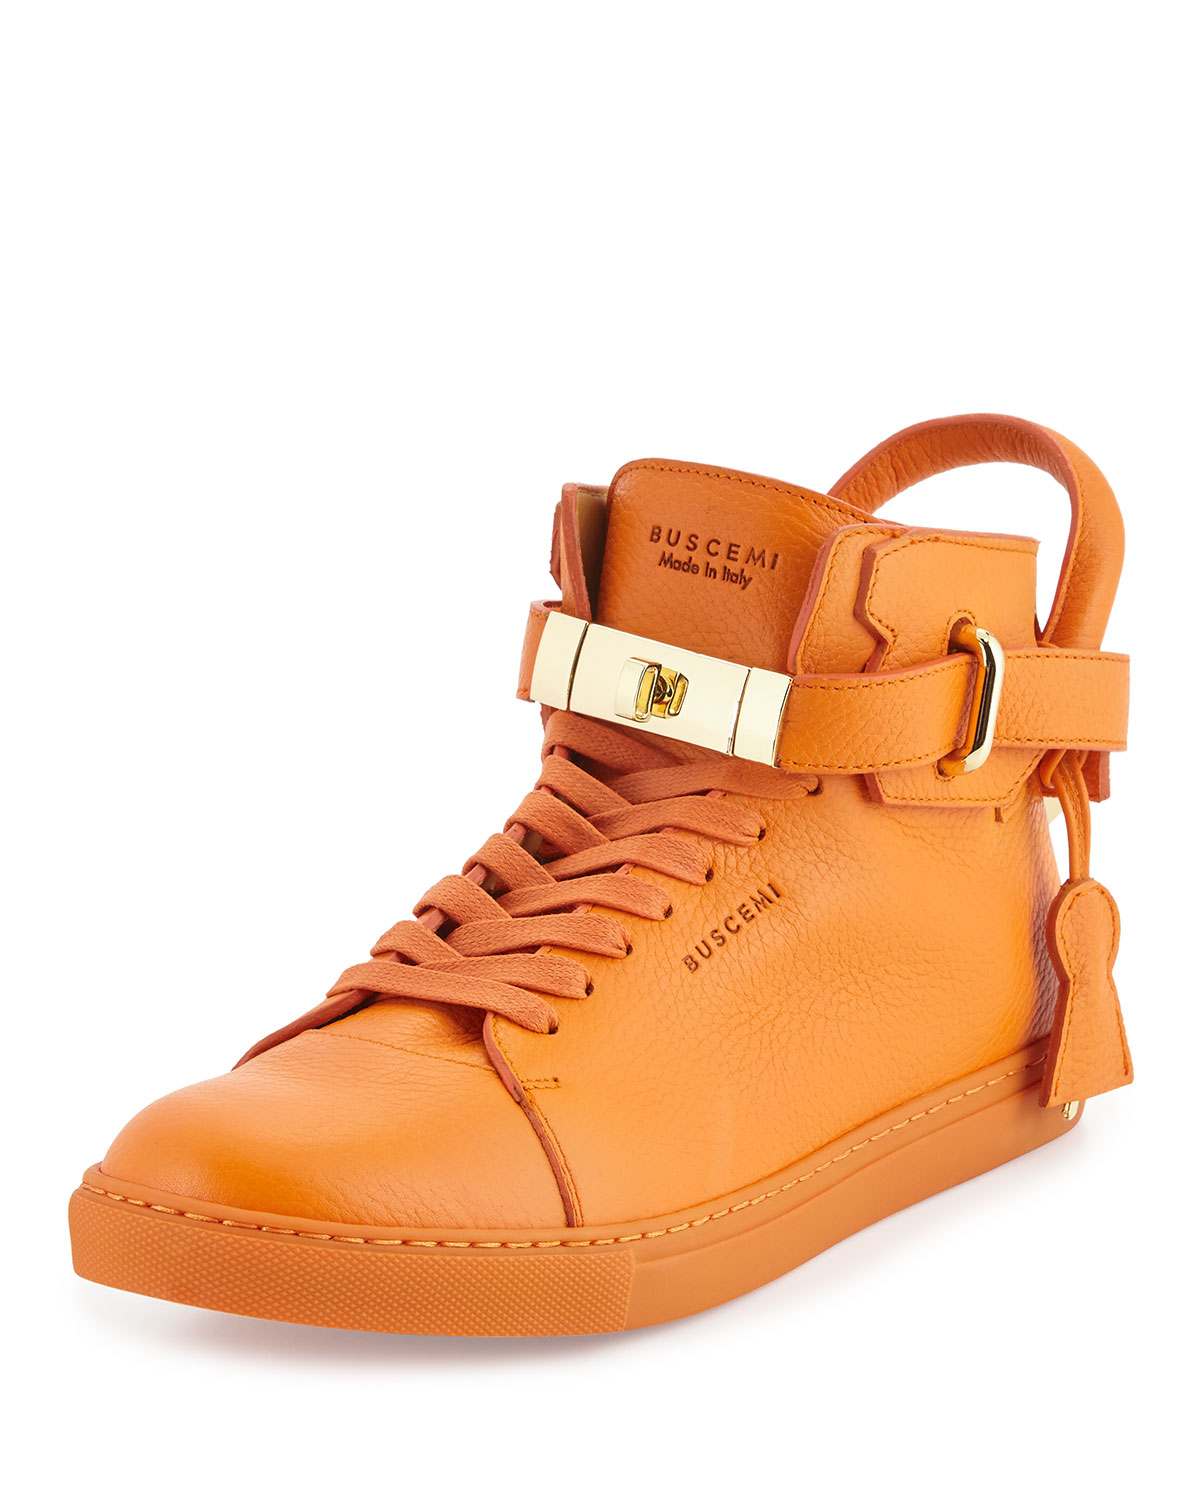 Buscemi 100mm High-Top Leather Sneaker